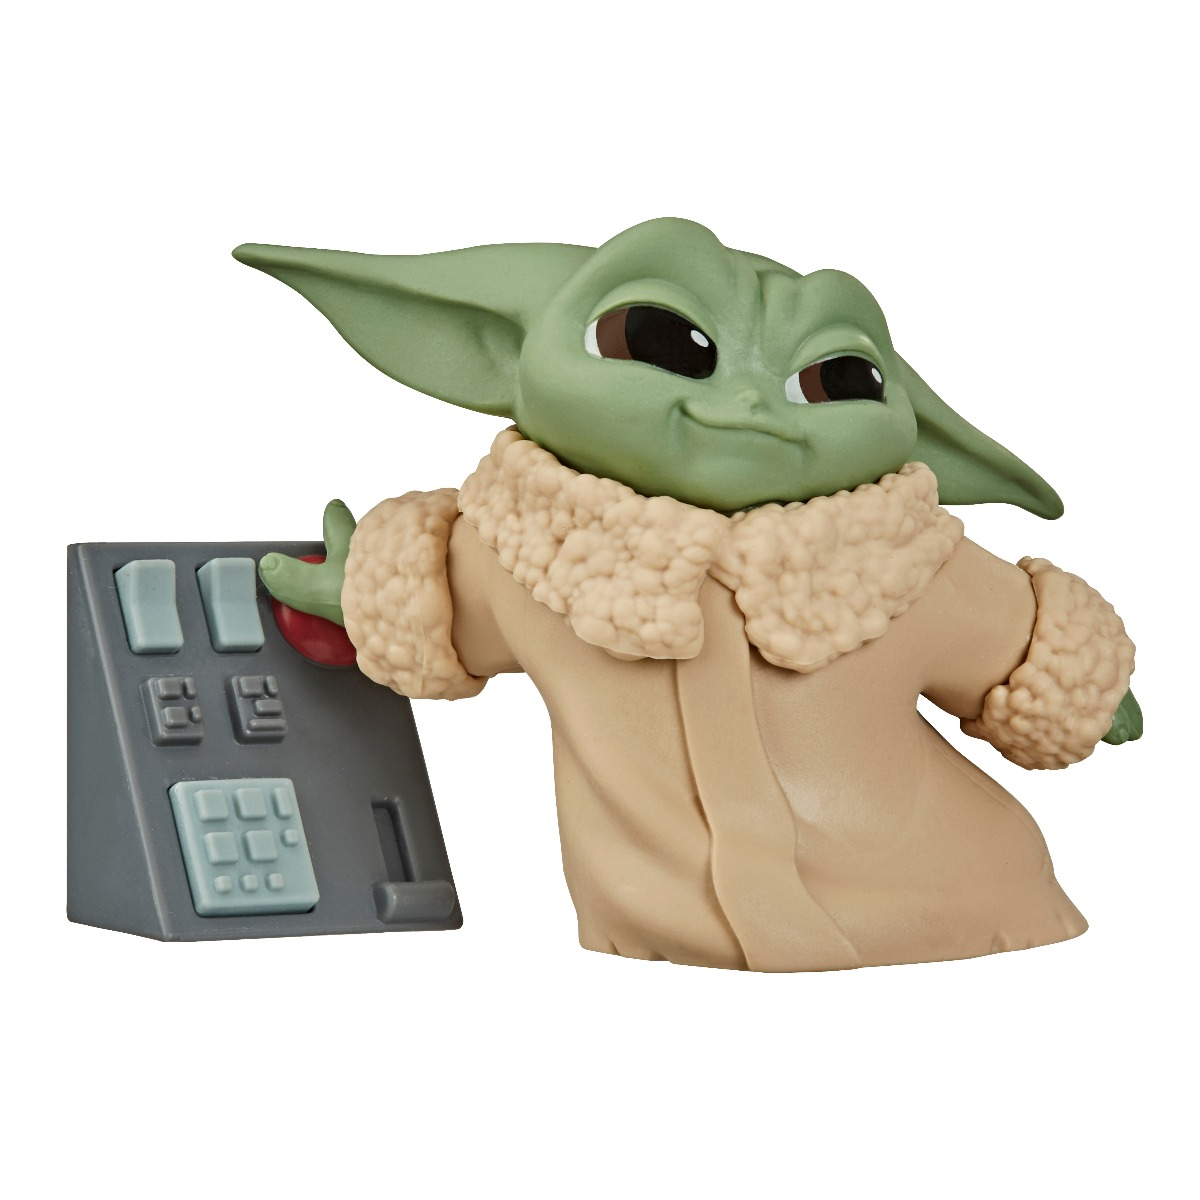 Figurina Star Wars Baby Yoda, Button, F14785L00, 6 cm